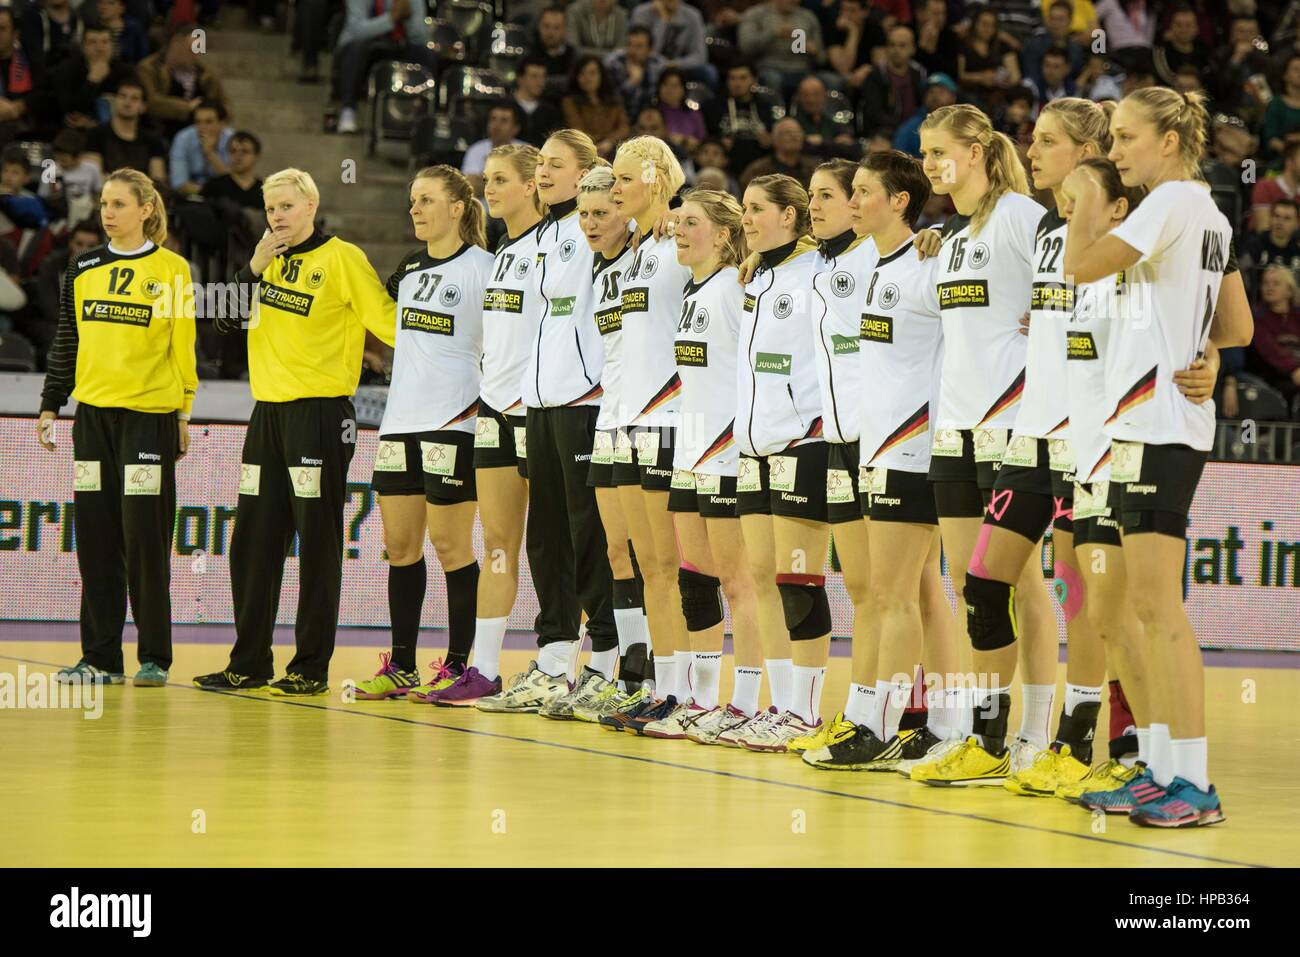 March 20, 2015: The Germany team before the free throws from left to right: Katja Schulke, Clara Woltering, Worez - Stock Image